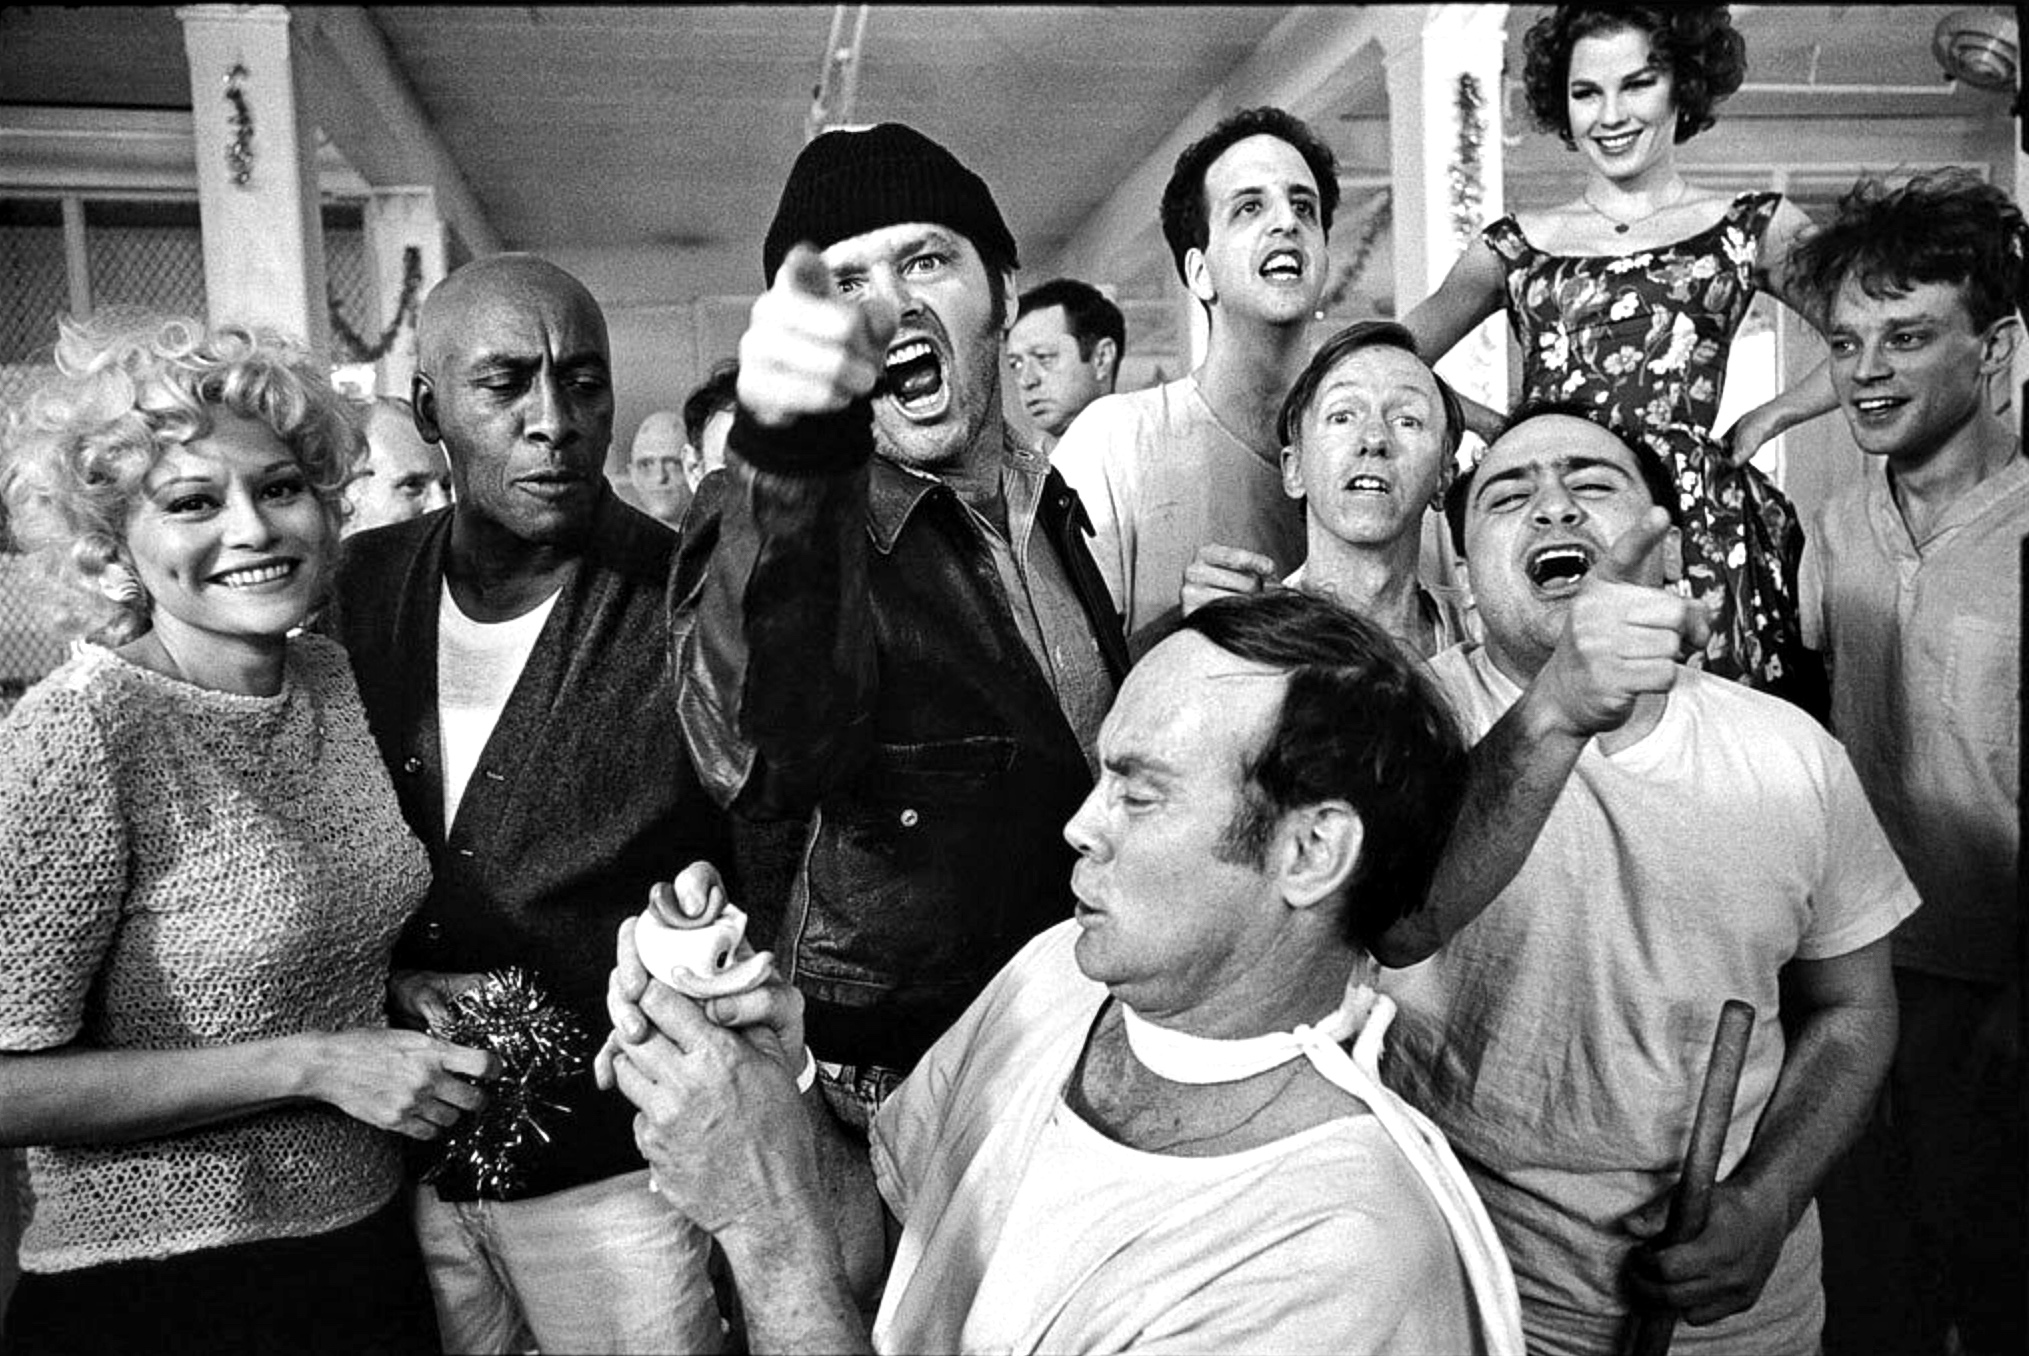 Jack Nicholson, Danny DeVito, Brad Dourif, Scatman Crothers, Vincent Schiavelli, Michael Berryman, William Duell, Louisa Moritz, and Mews Small in One Flew Over the Cuckoo's Nest (1975)